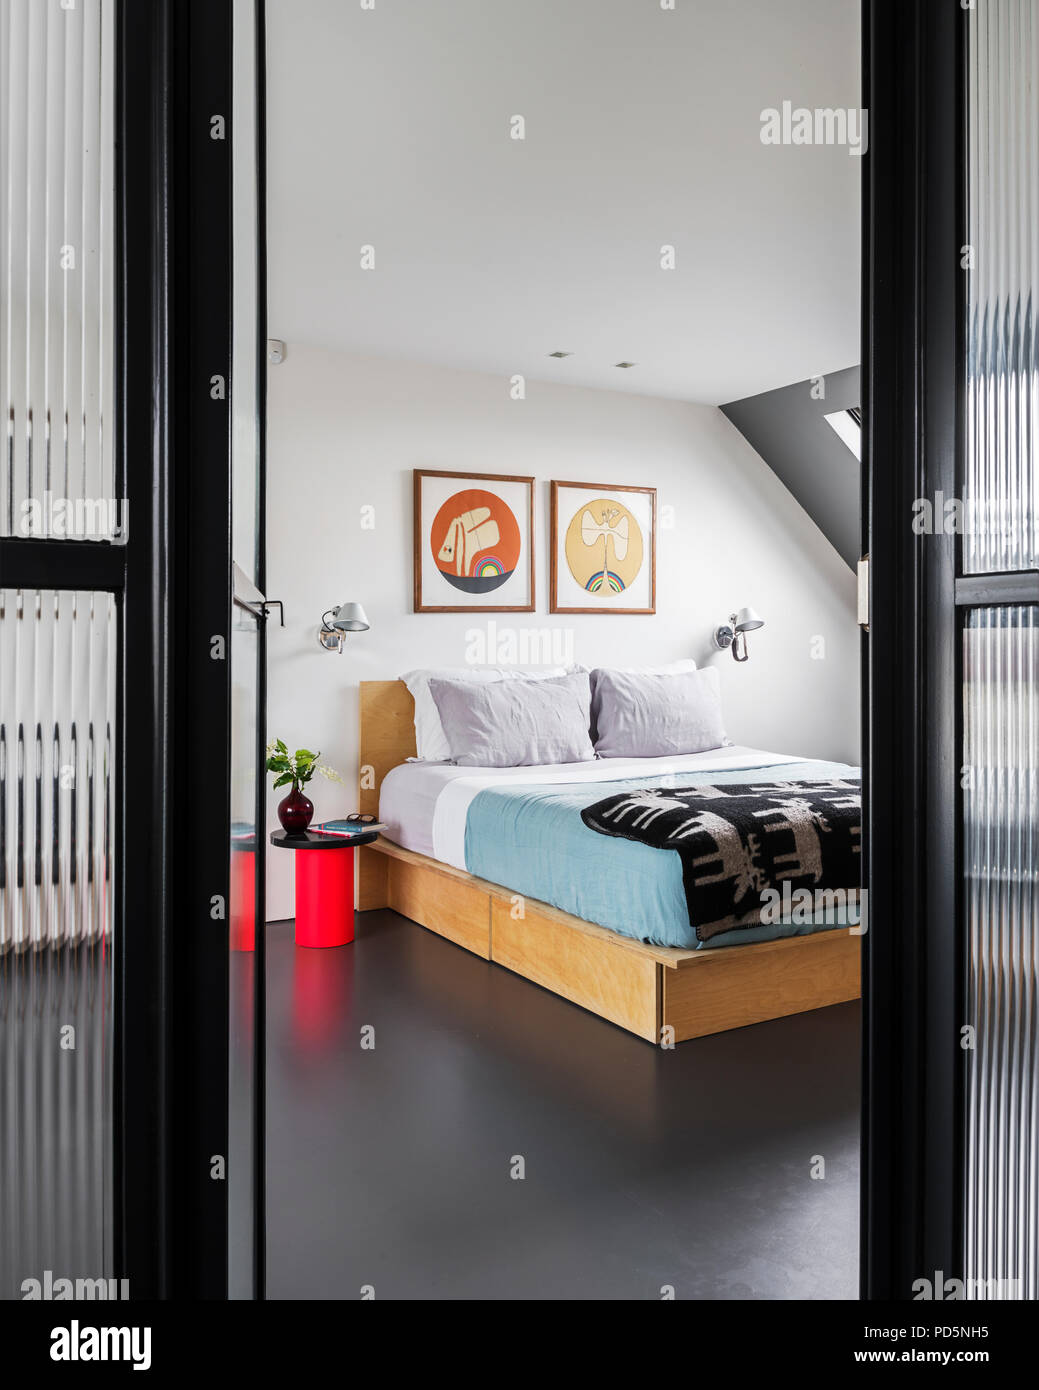 View through corrugated style glass wall into minimal style bedroom - Stock Image